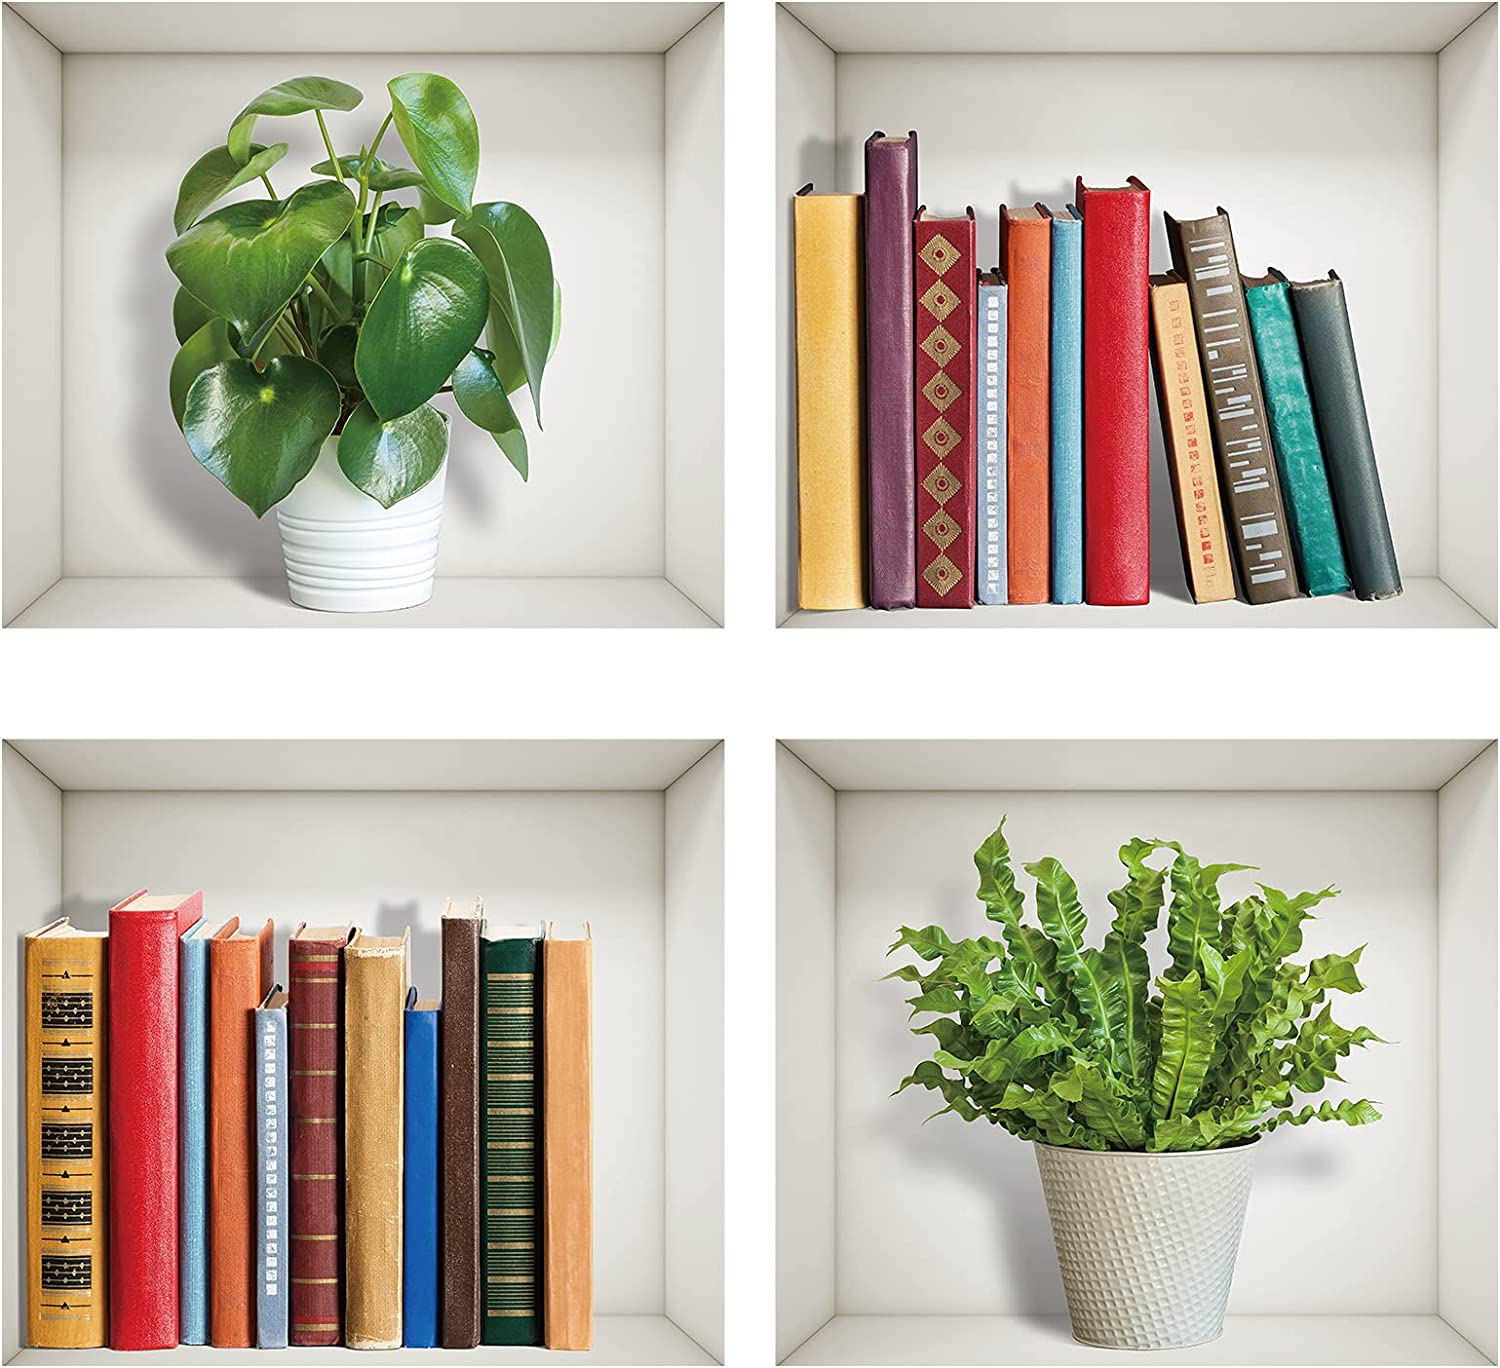 3D Wall Decals Removable Wall Stickers 3D Books Green Plants Mural Wall Stickers Vinyl Wall Art Decor for Office Home Apartment Dorm Living Room Bedroom Wall Decoration (Set of 4, 12.5 x 11.2 Inch)